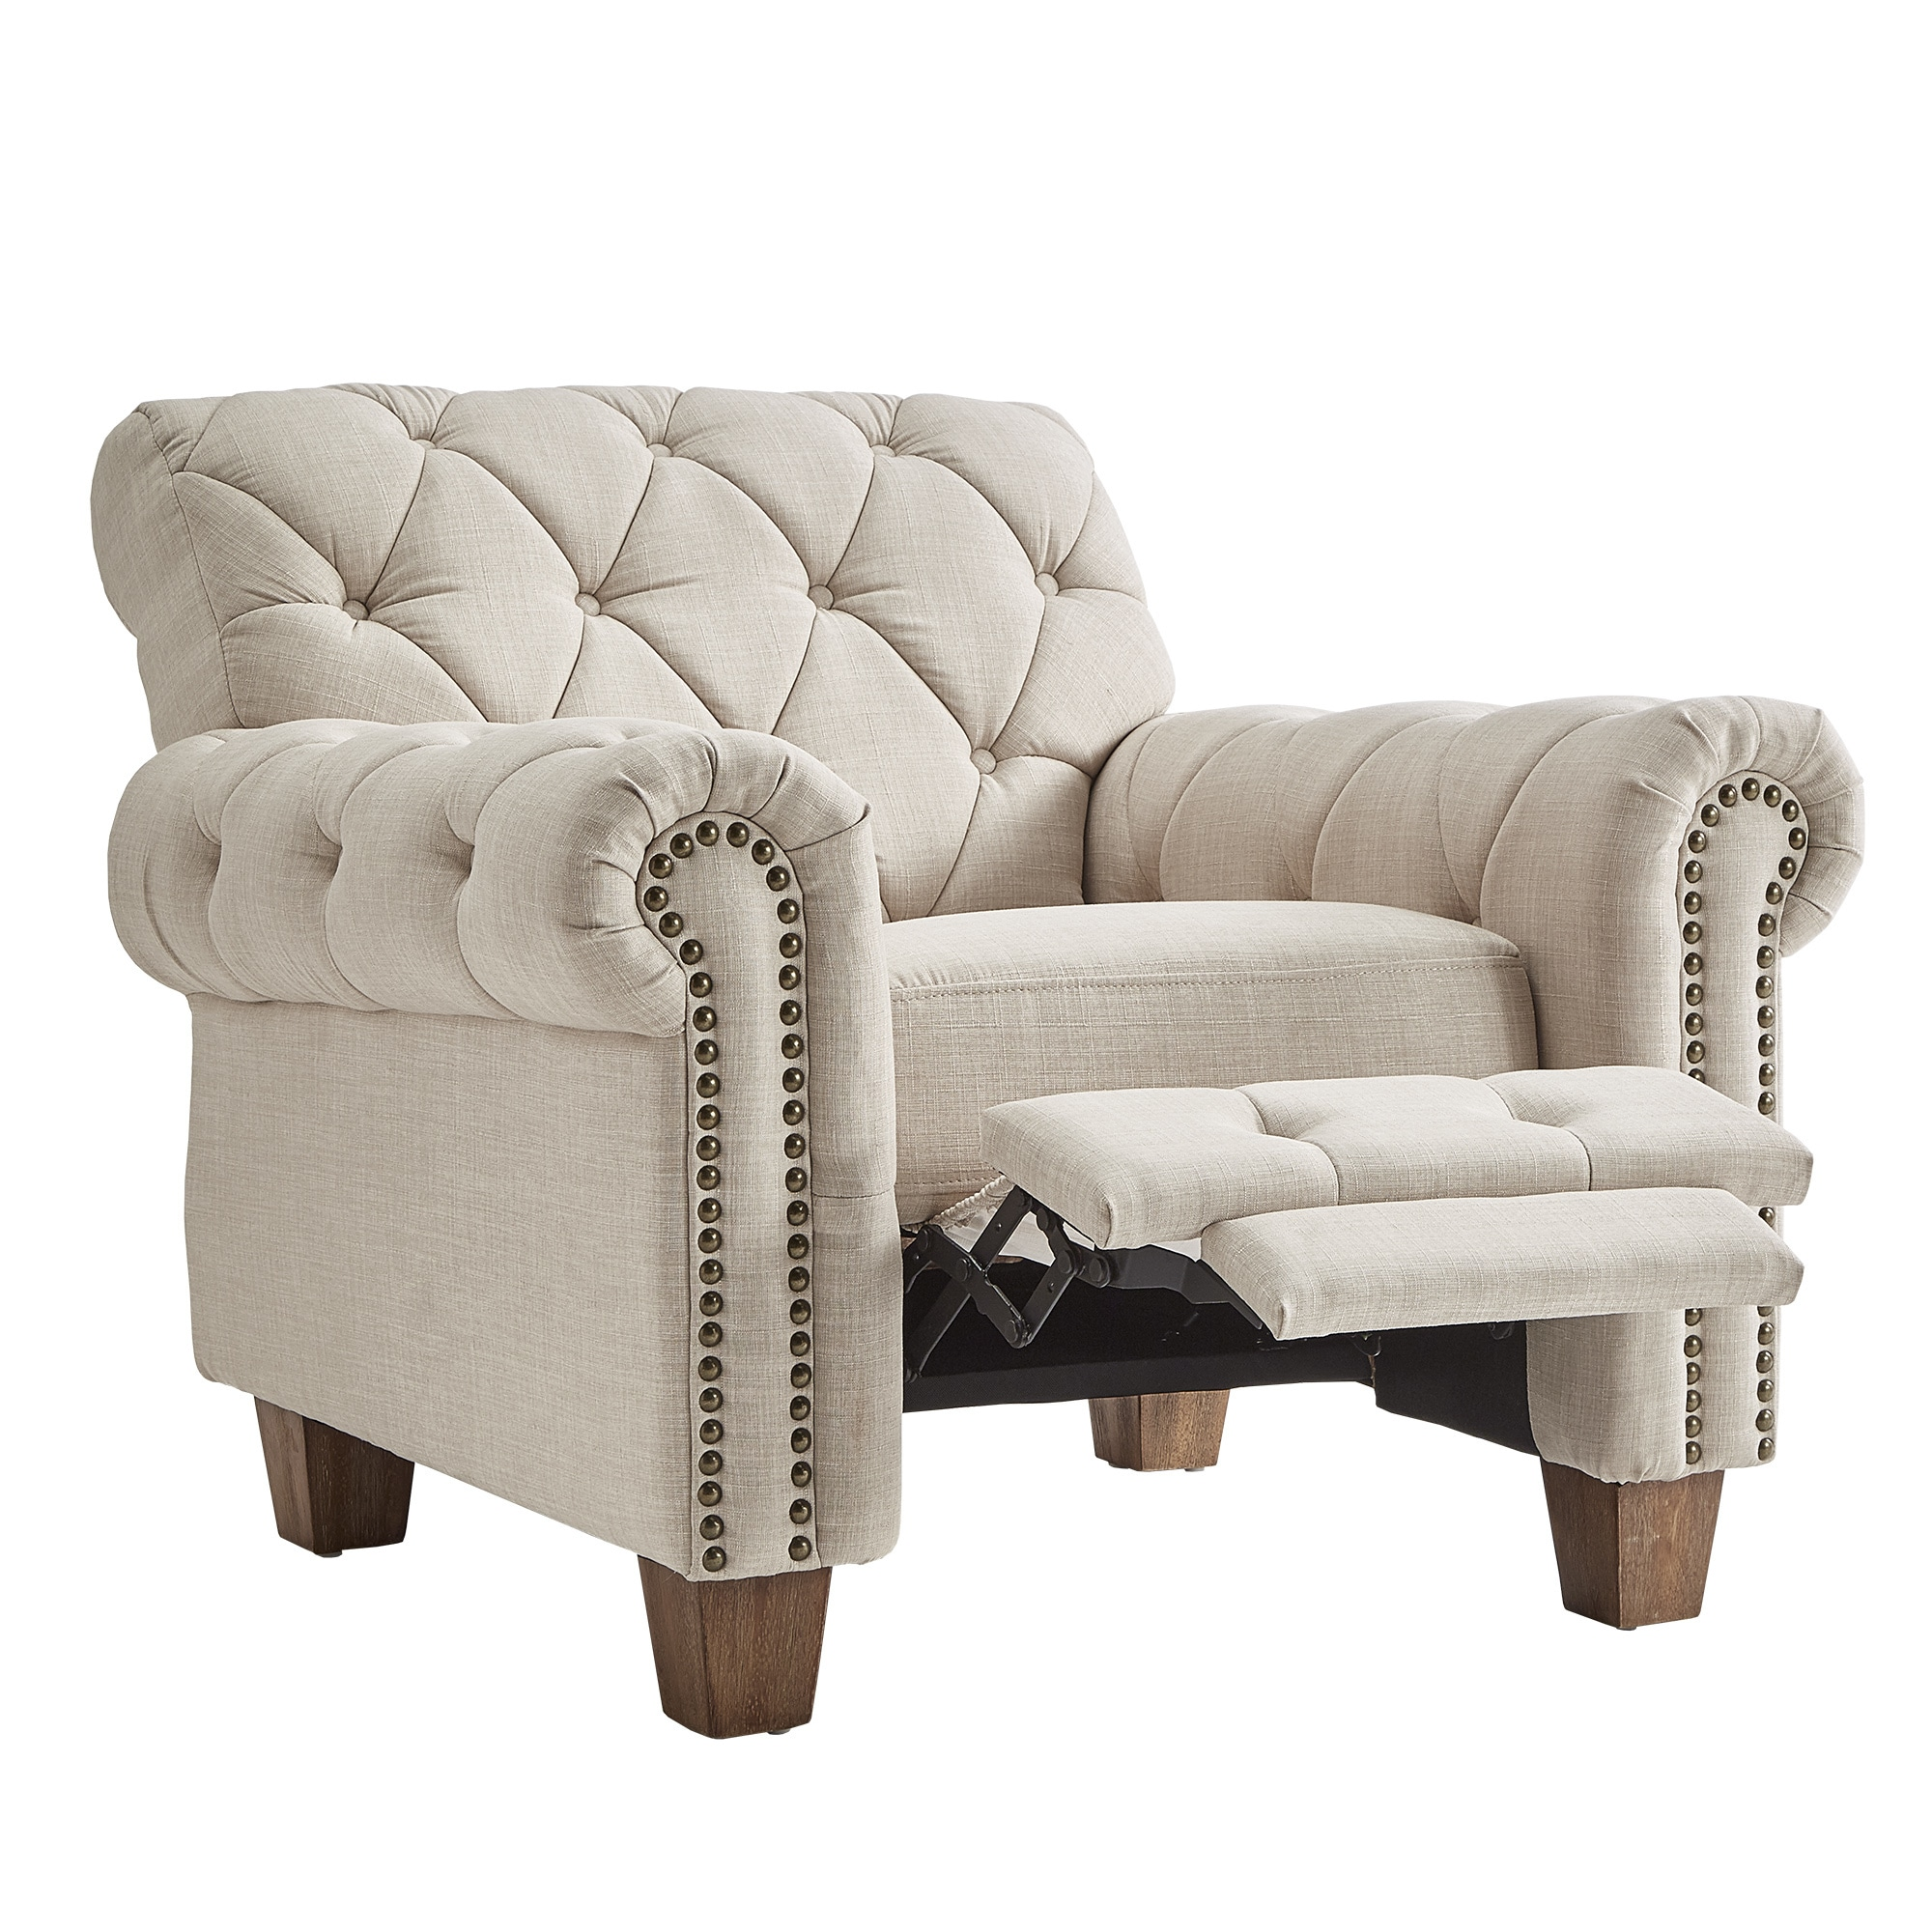 Gentil Shop Greenwich Tufted Beige Linen Chesterfield Recliner By INSPIRE Q  Artisan   On Sale   Free Shipping Today   Overstock.com   18657899